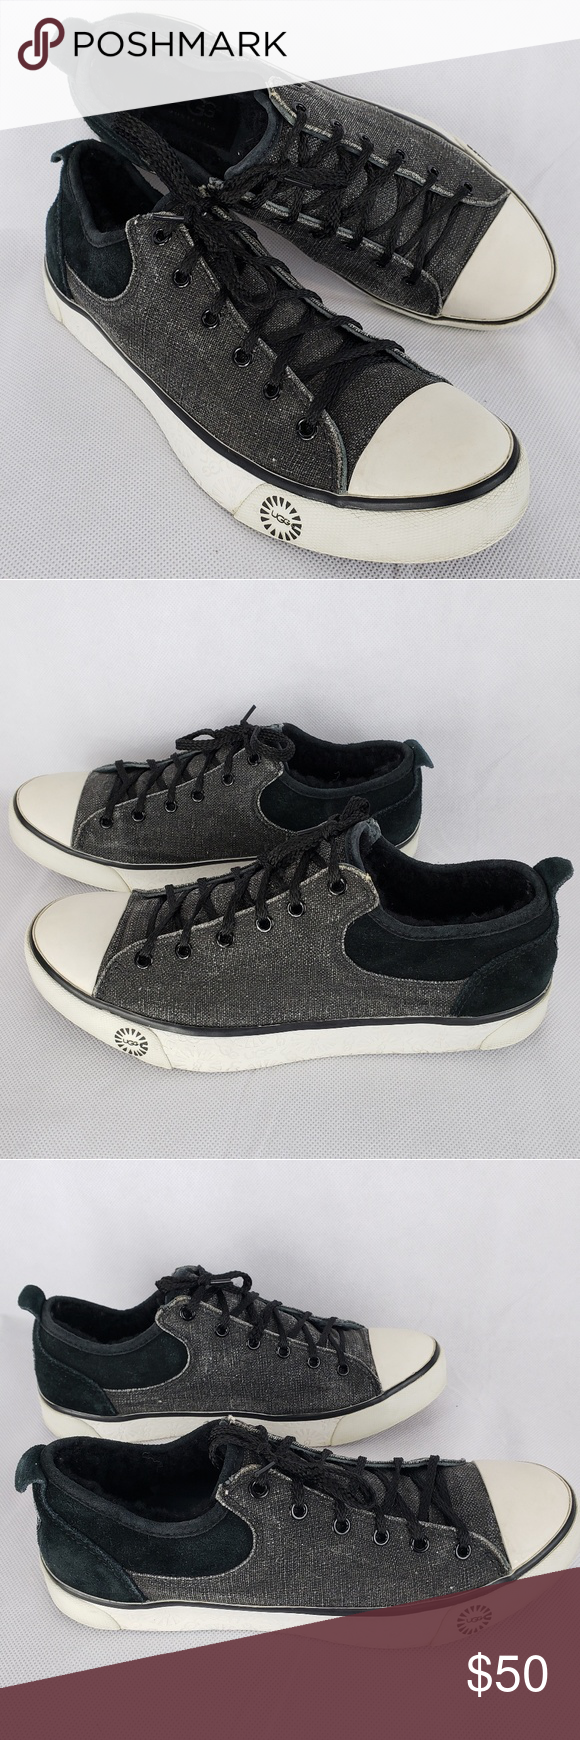 f624155f912 UGG Evera Canvas Lined Sneaker * Excellent used condition * Clean ...